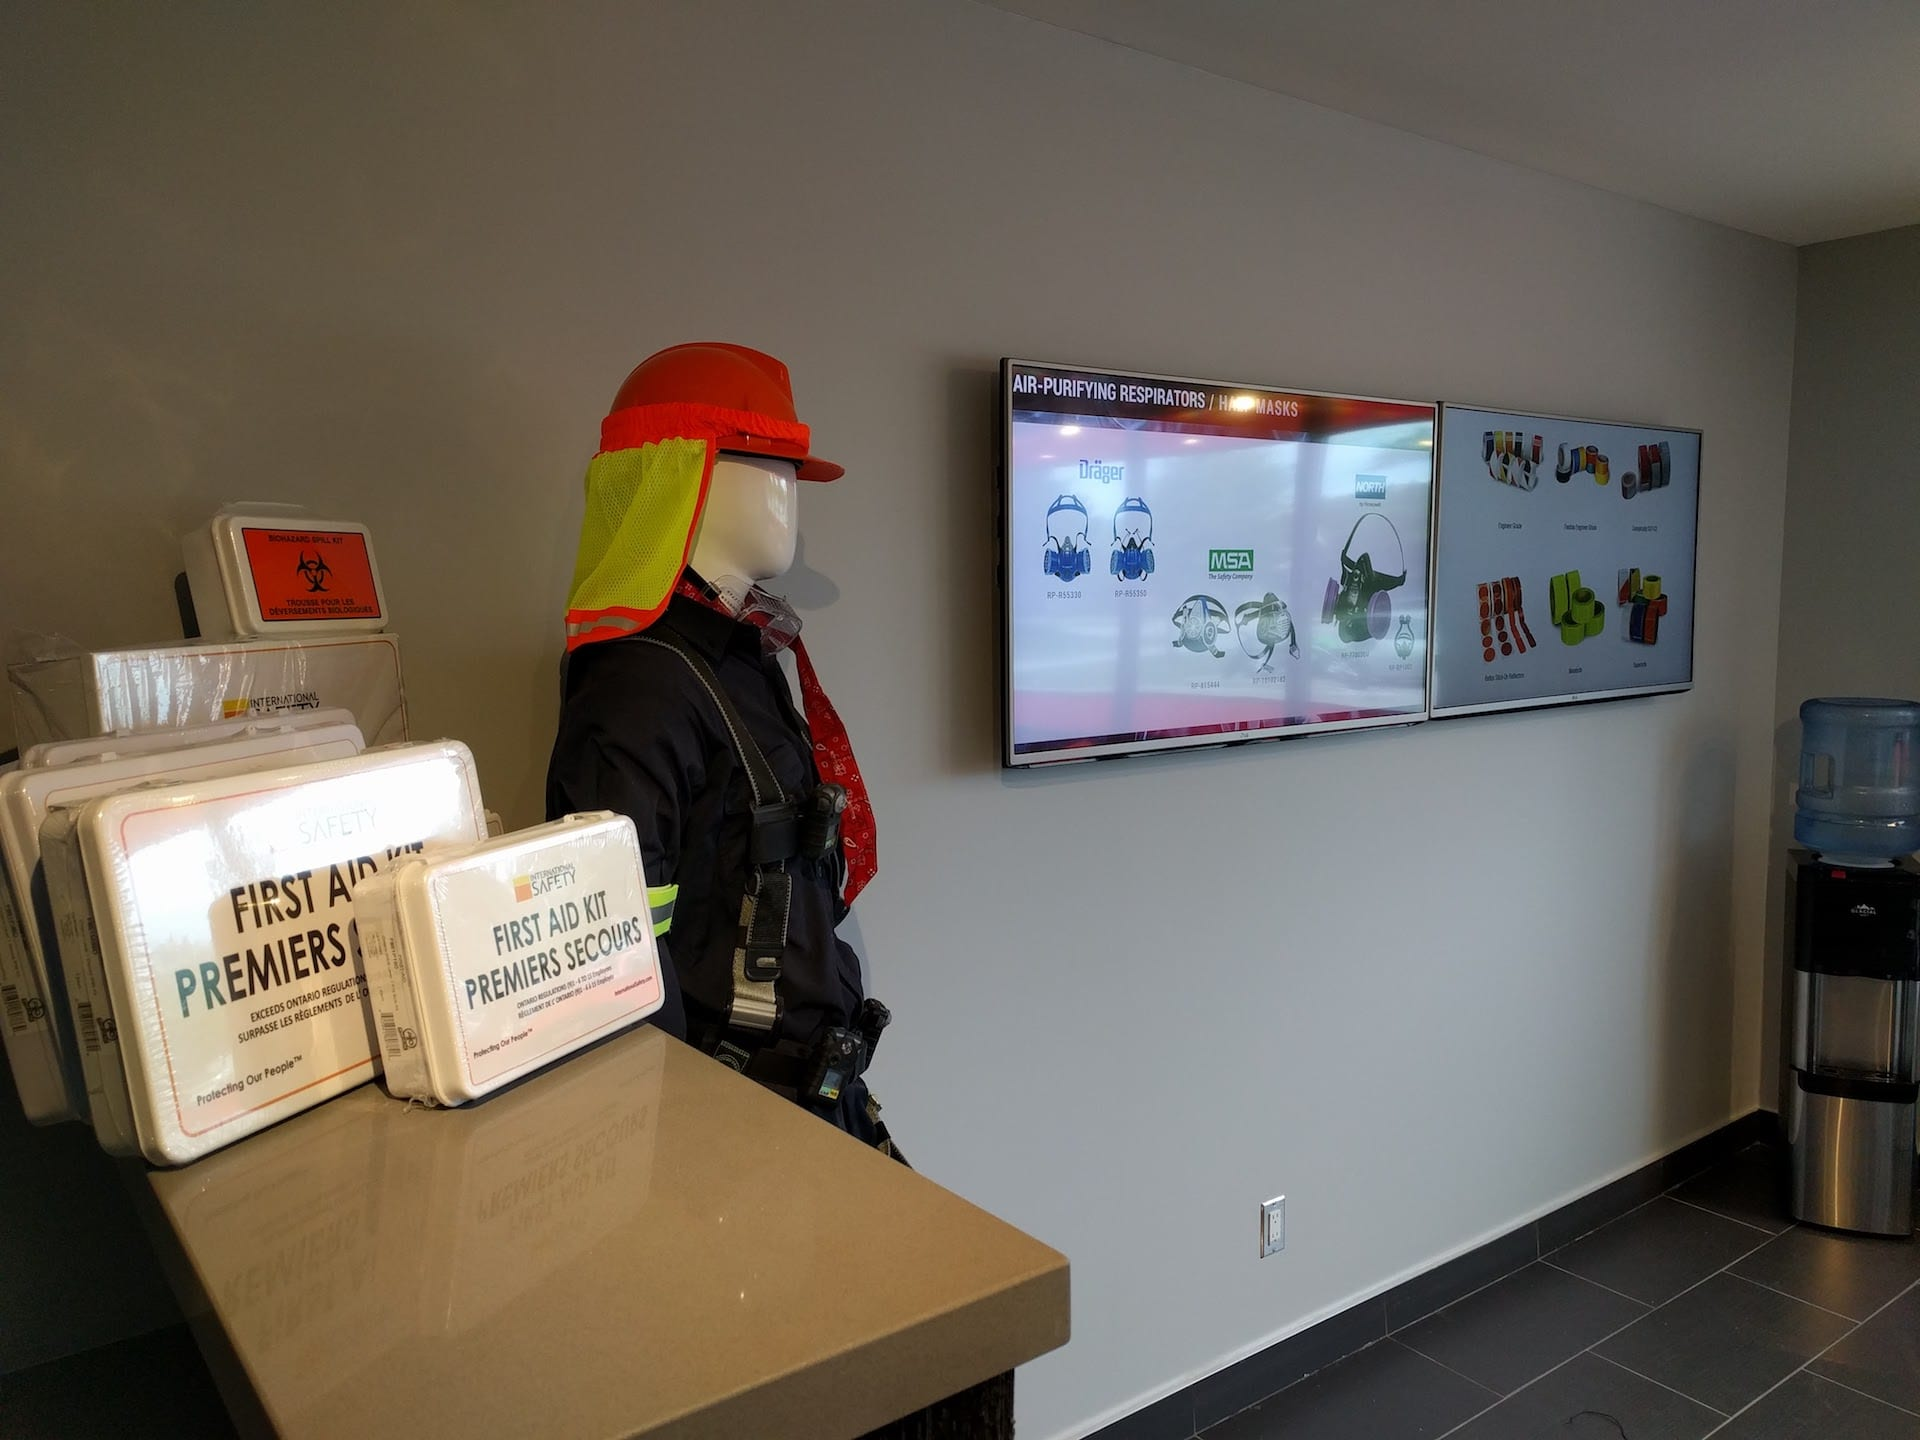 Digital signage for PPE, health and safety equipment sellers